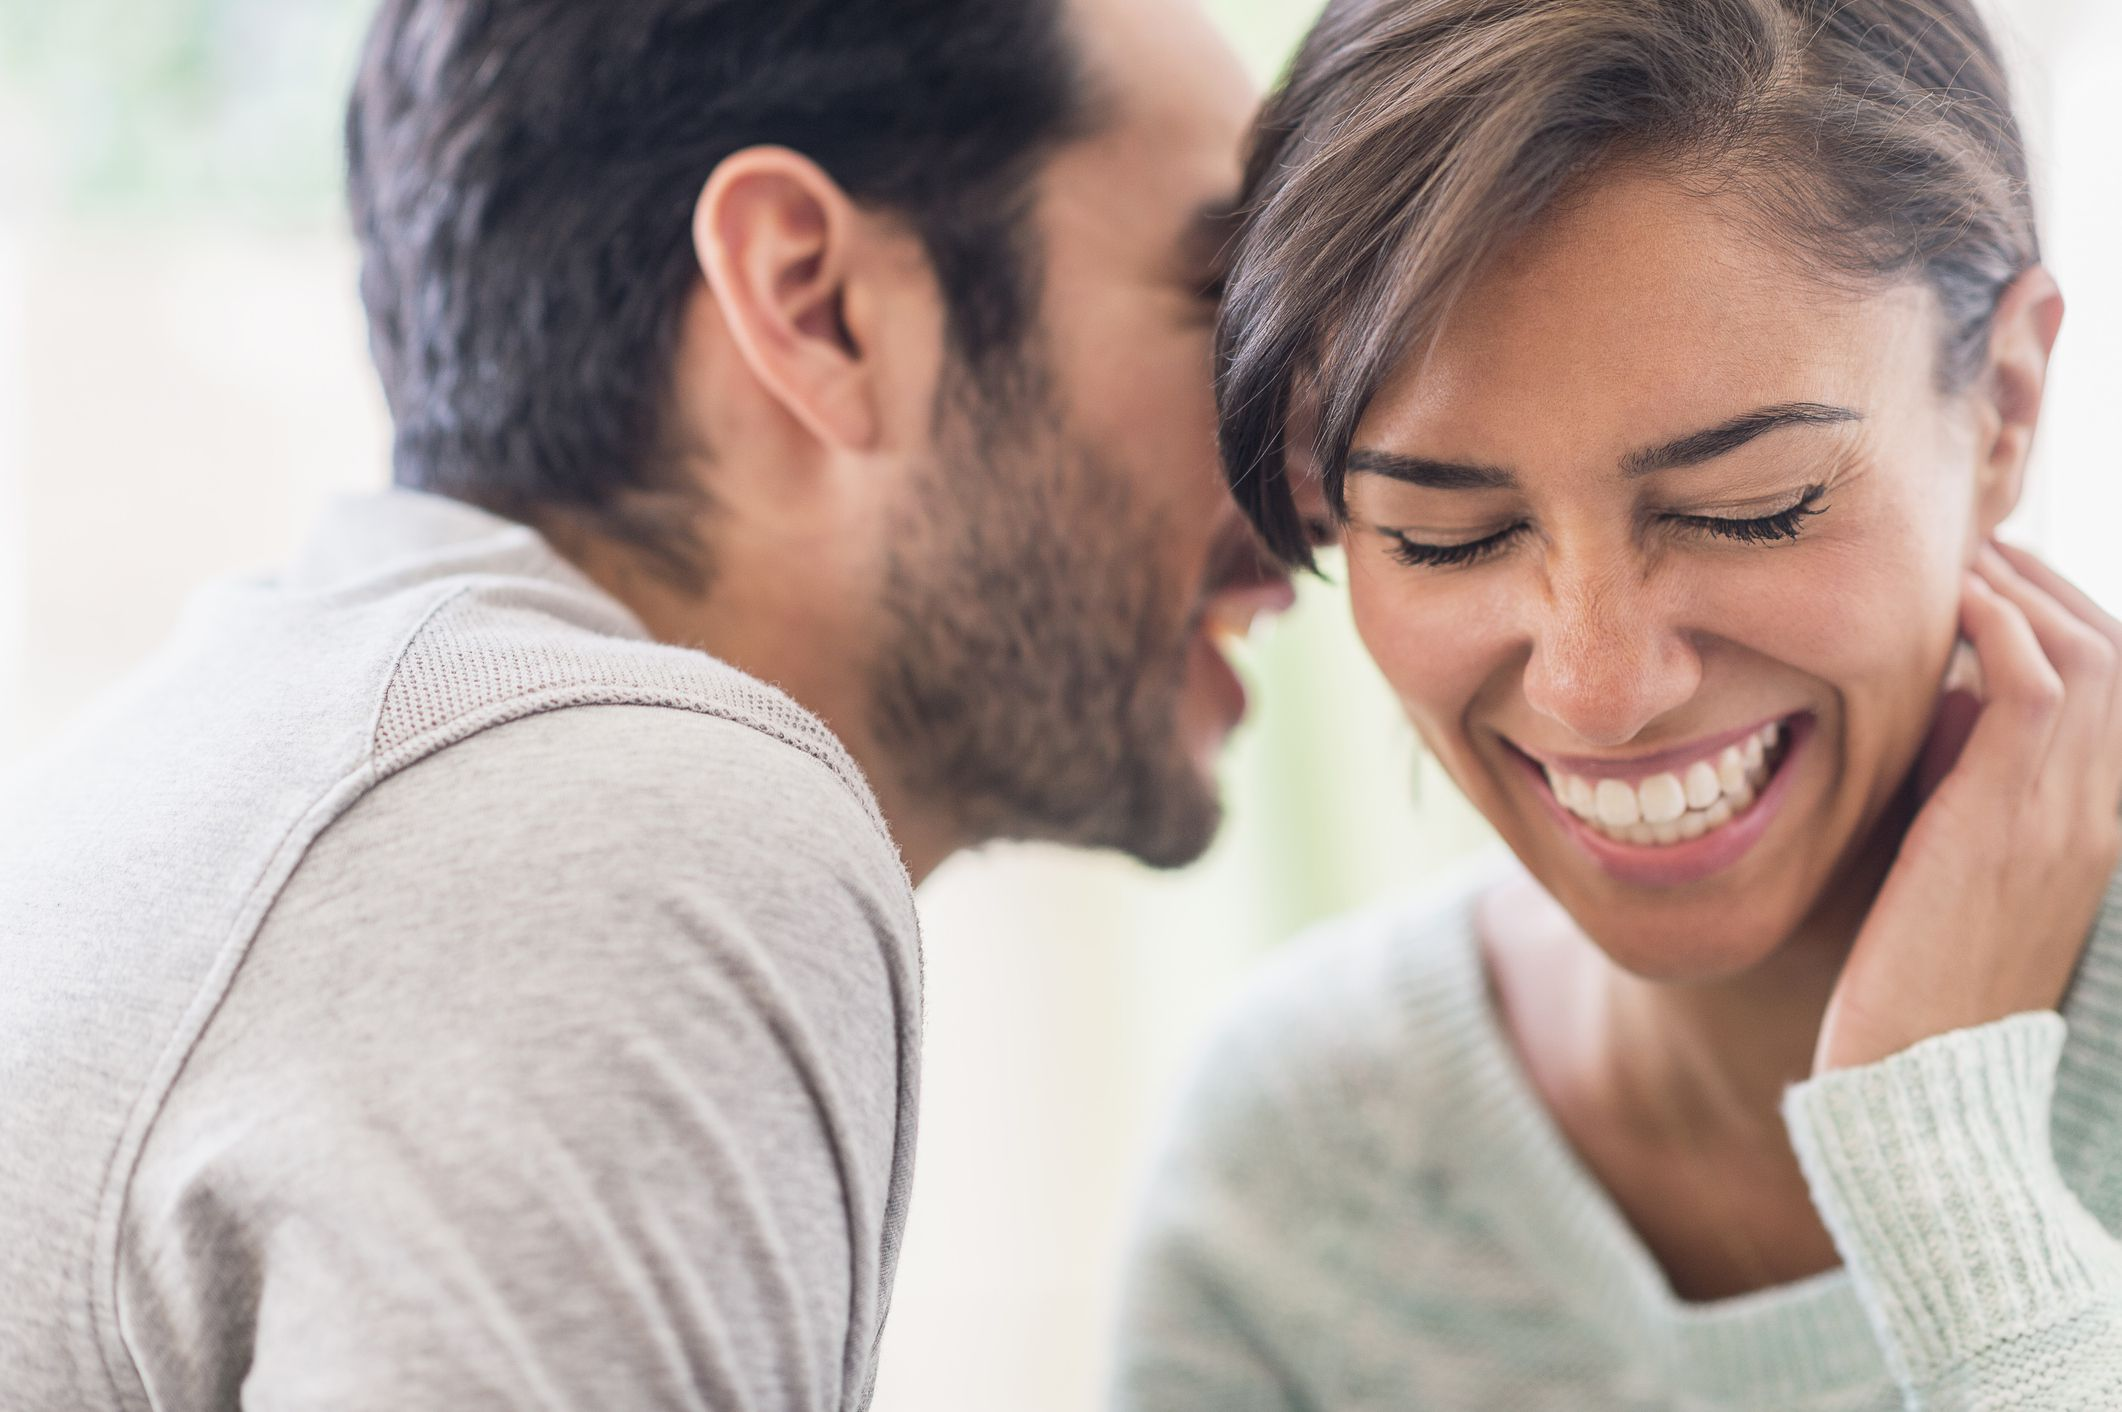 5 Ways to Keep a Man Interested and Make Him Feel Loved